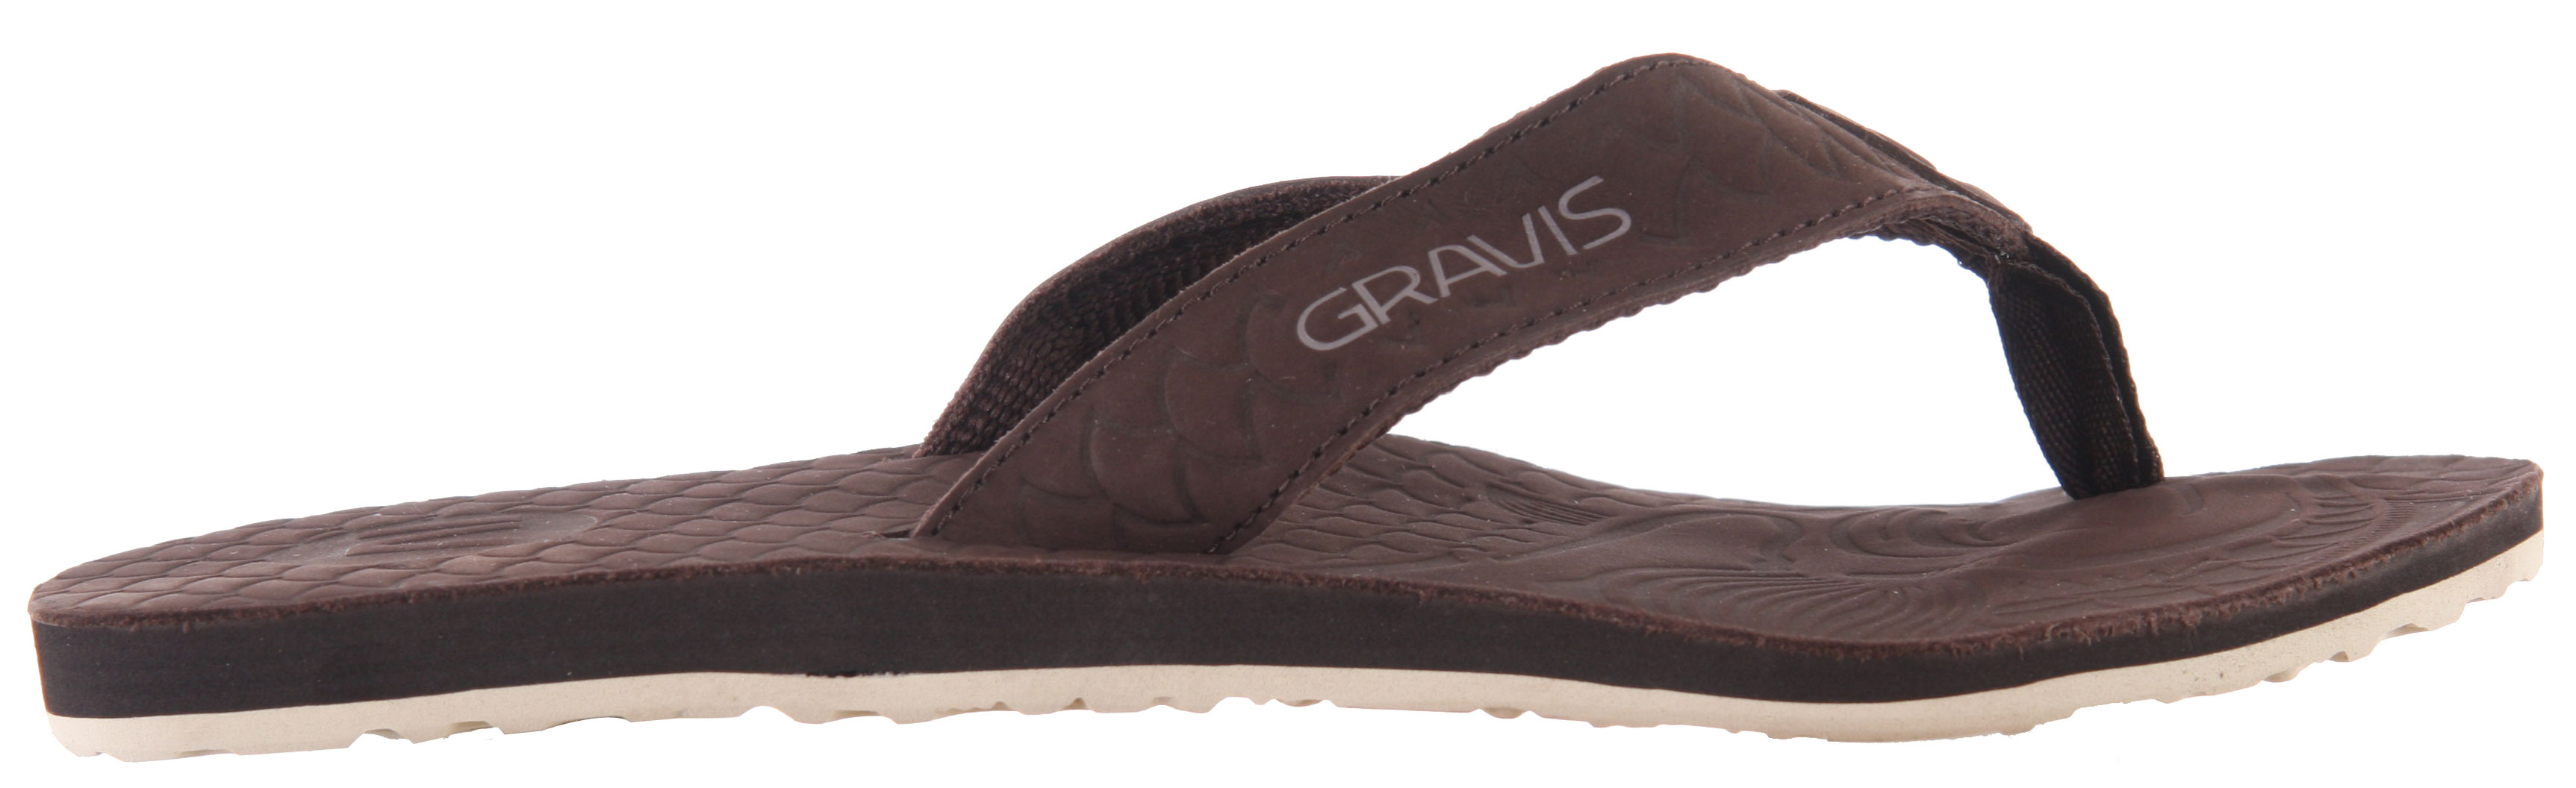 Surf The Gravis Kirra Sandals provides the perfect summer look featuring leather straps that are custom designed to feel ultra comfortable. With a foamy footbed, these sandals provide much needed arch support. Great rubber traction makes it ideal to walk around all day in great ease and comfort. So, rock these sandals this summer and have a great time in the sun.Key Features of the Gravis Kirra Sandals: Premium leather topdeck materials Arch support Seamless comfort strap design Nylon webbing toe post Custom embossed Koi fish graphics Soft touch EVA foam topdeck Rubber traction outsole - $16.92